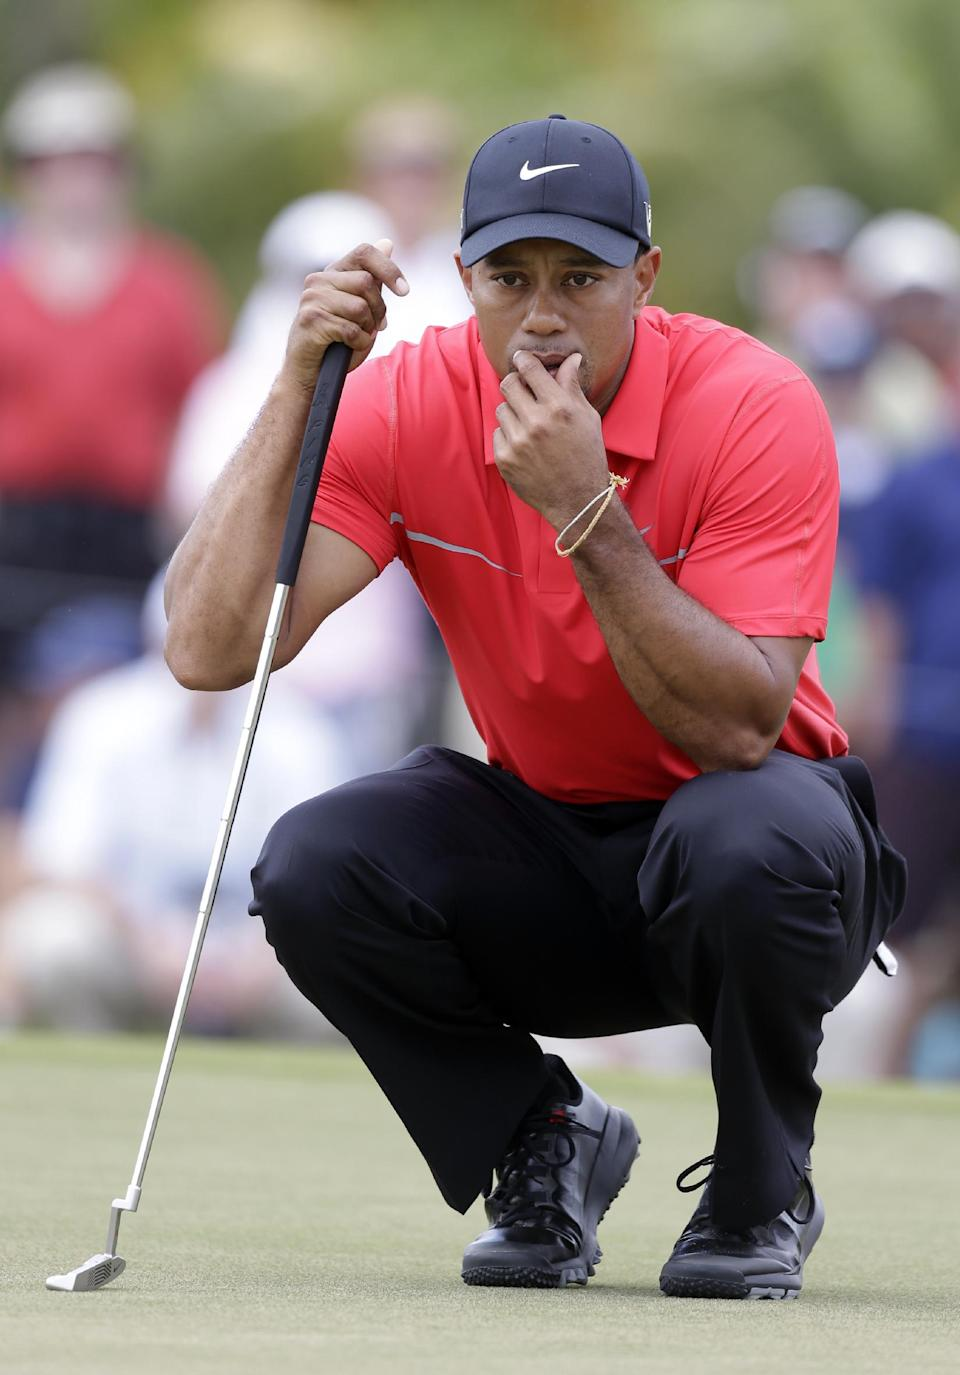 Tiger Woods looks at his shot on the fourth green during the third round of the Cadillac Championship golf tournament on Sunday, March 10, 2013, in Doral, Fla. (AP Photo/Wilfredo Lee)